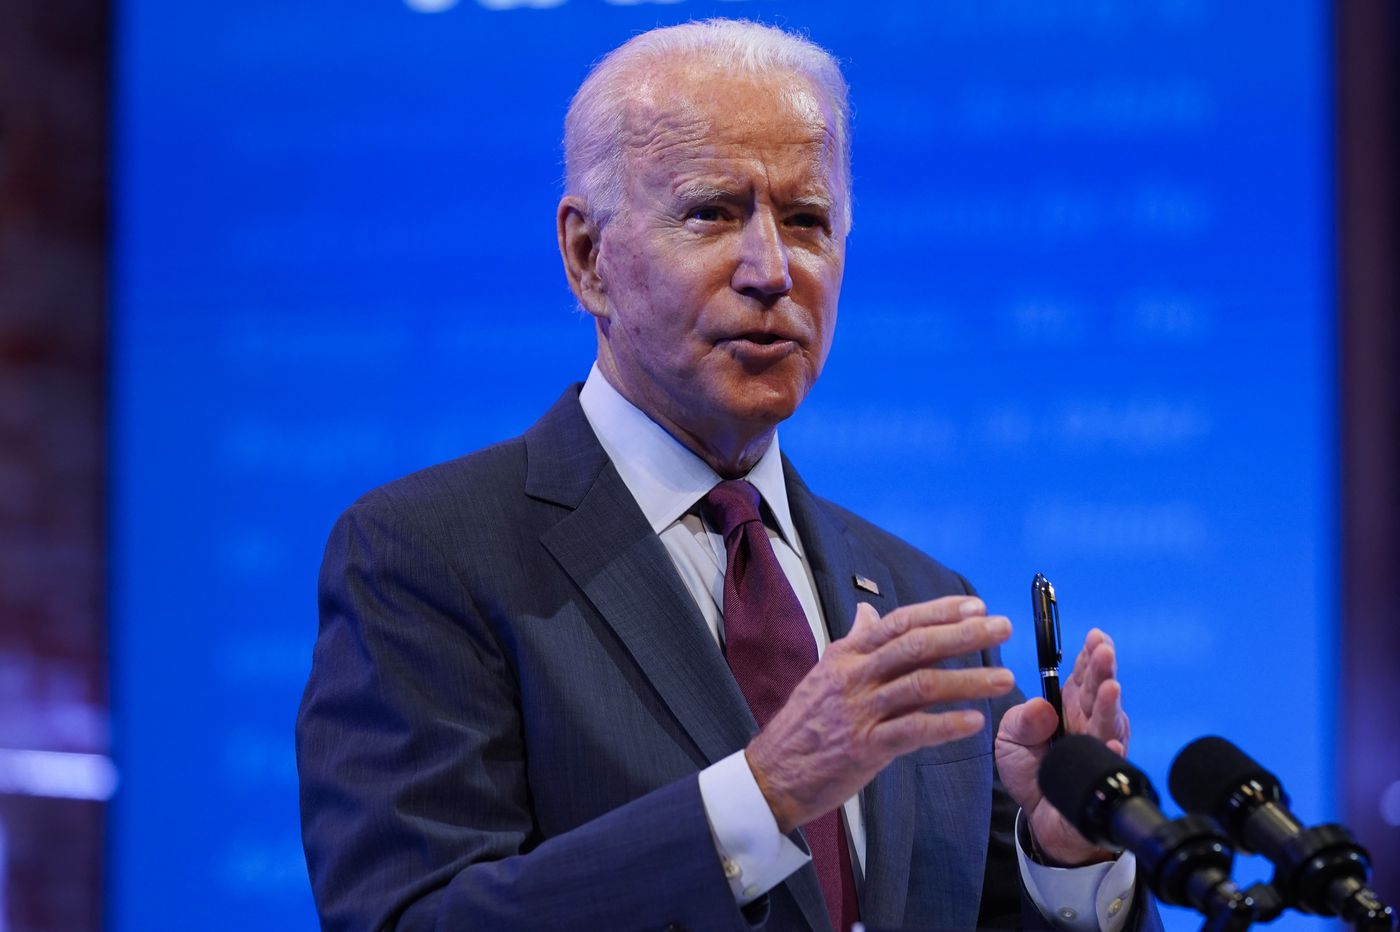 Biden to Dems: Focus on health care, not Supreme Court expansion